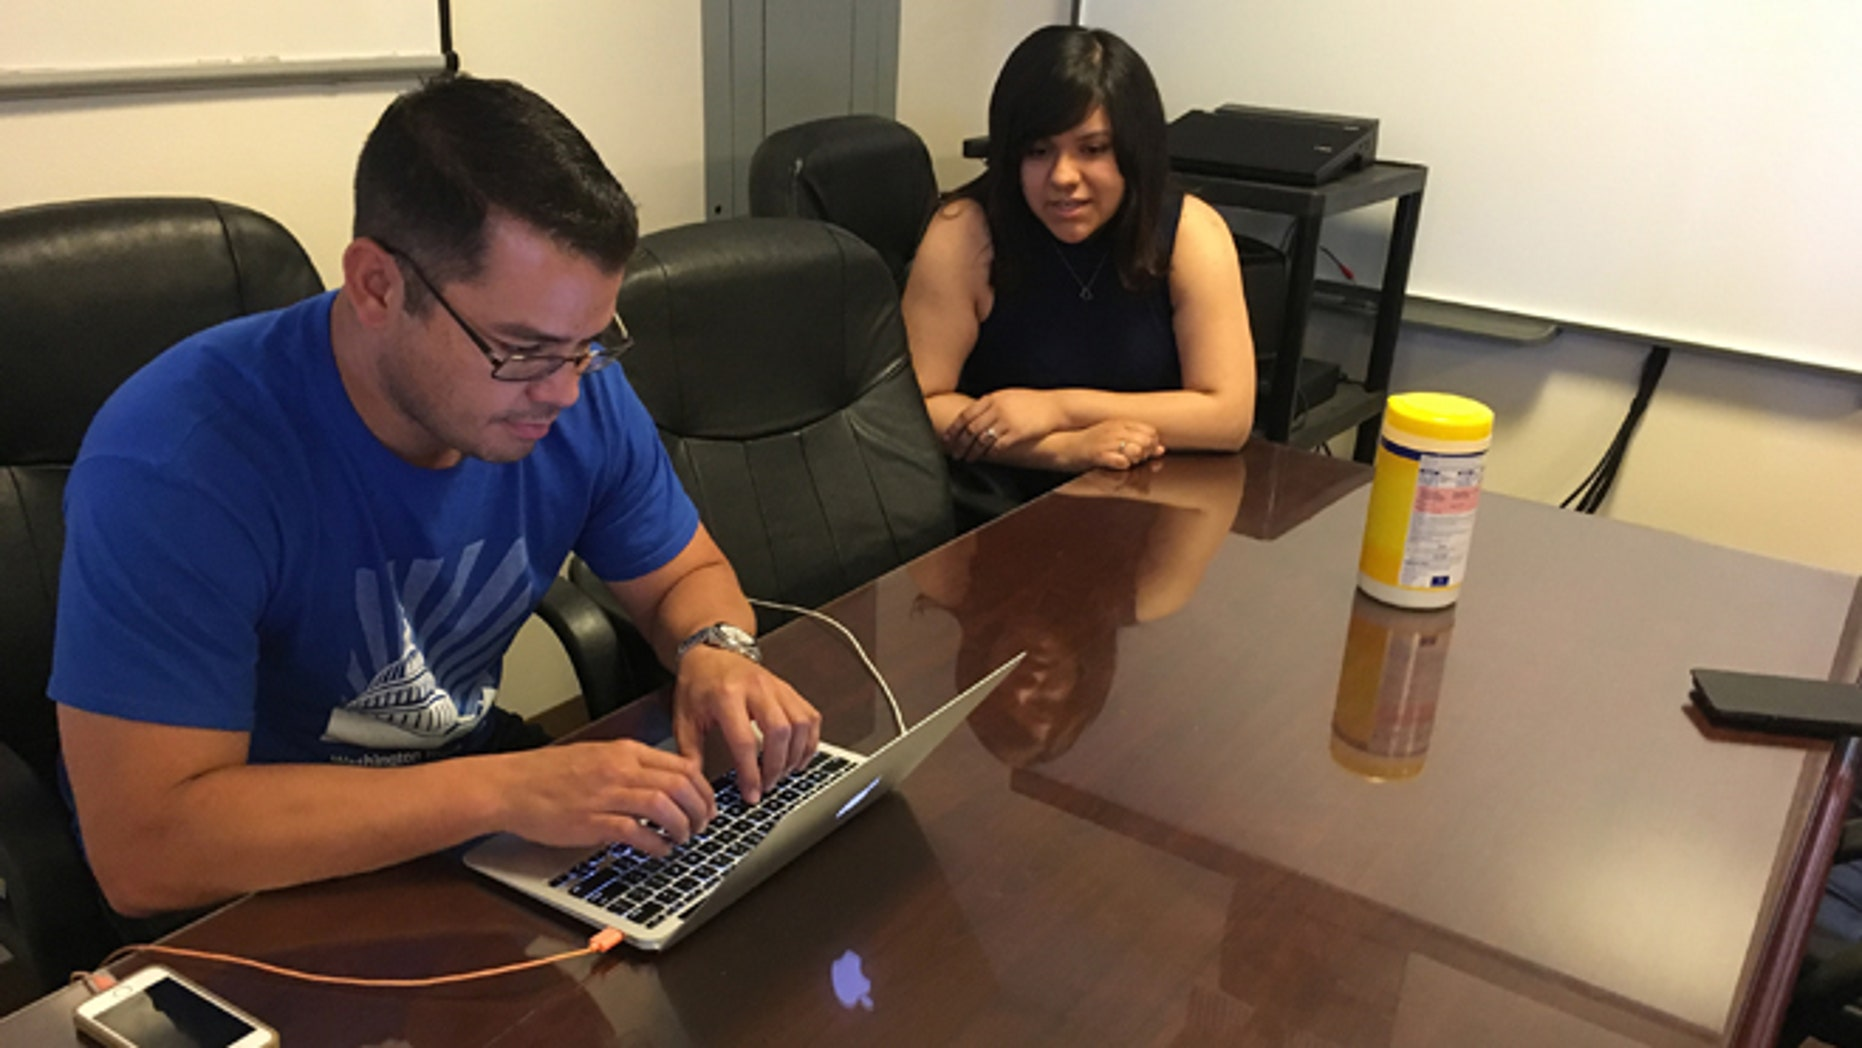 In this Wednesday, June 22, 2016 photo, Jesus Villarreal and Martha Guzman of the LULAC National Educational Service Centers, Inc., work on Hispanic student-related programs in the Albuquerque office, N.M. The nation's Hispanic population grew by 2.2 percent to 56.6 million, and New Mexico had the largest percentage of Latinos in the country at 48 percent, according to new information from the U.S. Census Bureau. (AP Photo/Russell Contreras)